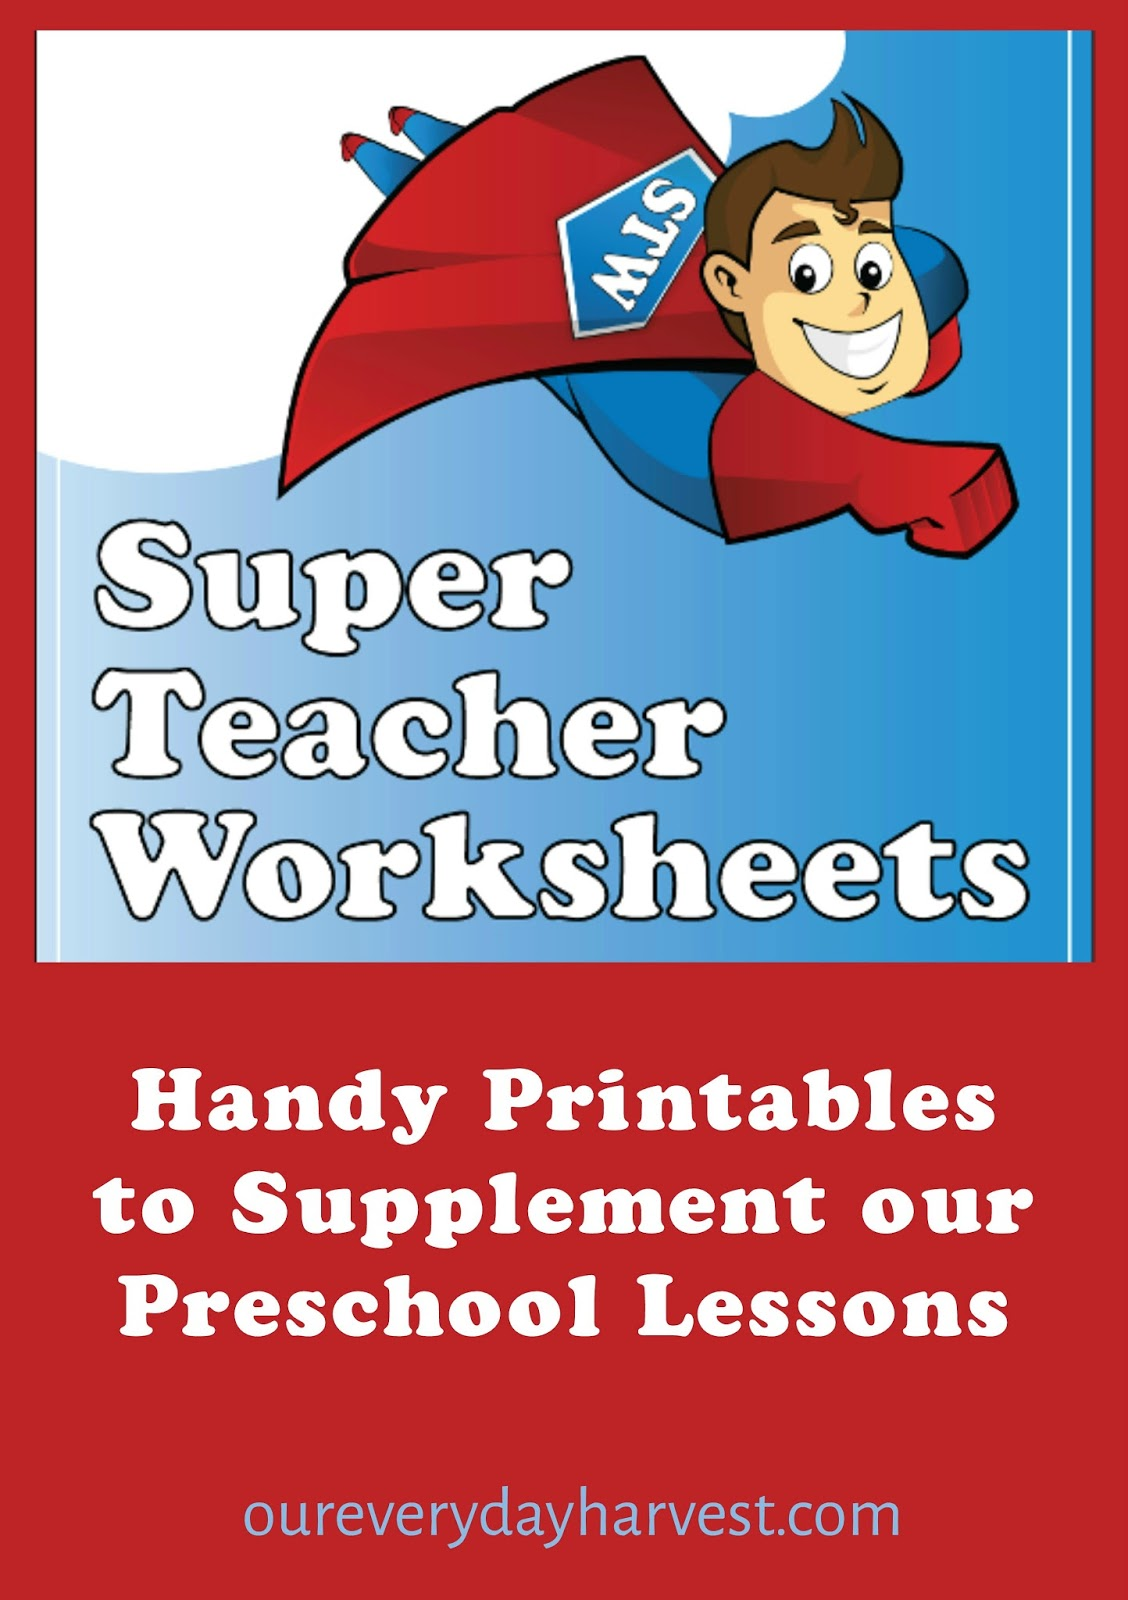 Handy Printables to Supplement our Preschool Lessons: Super Teacher ...